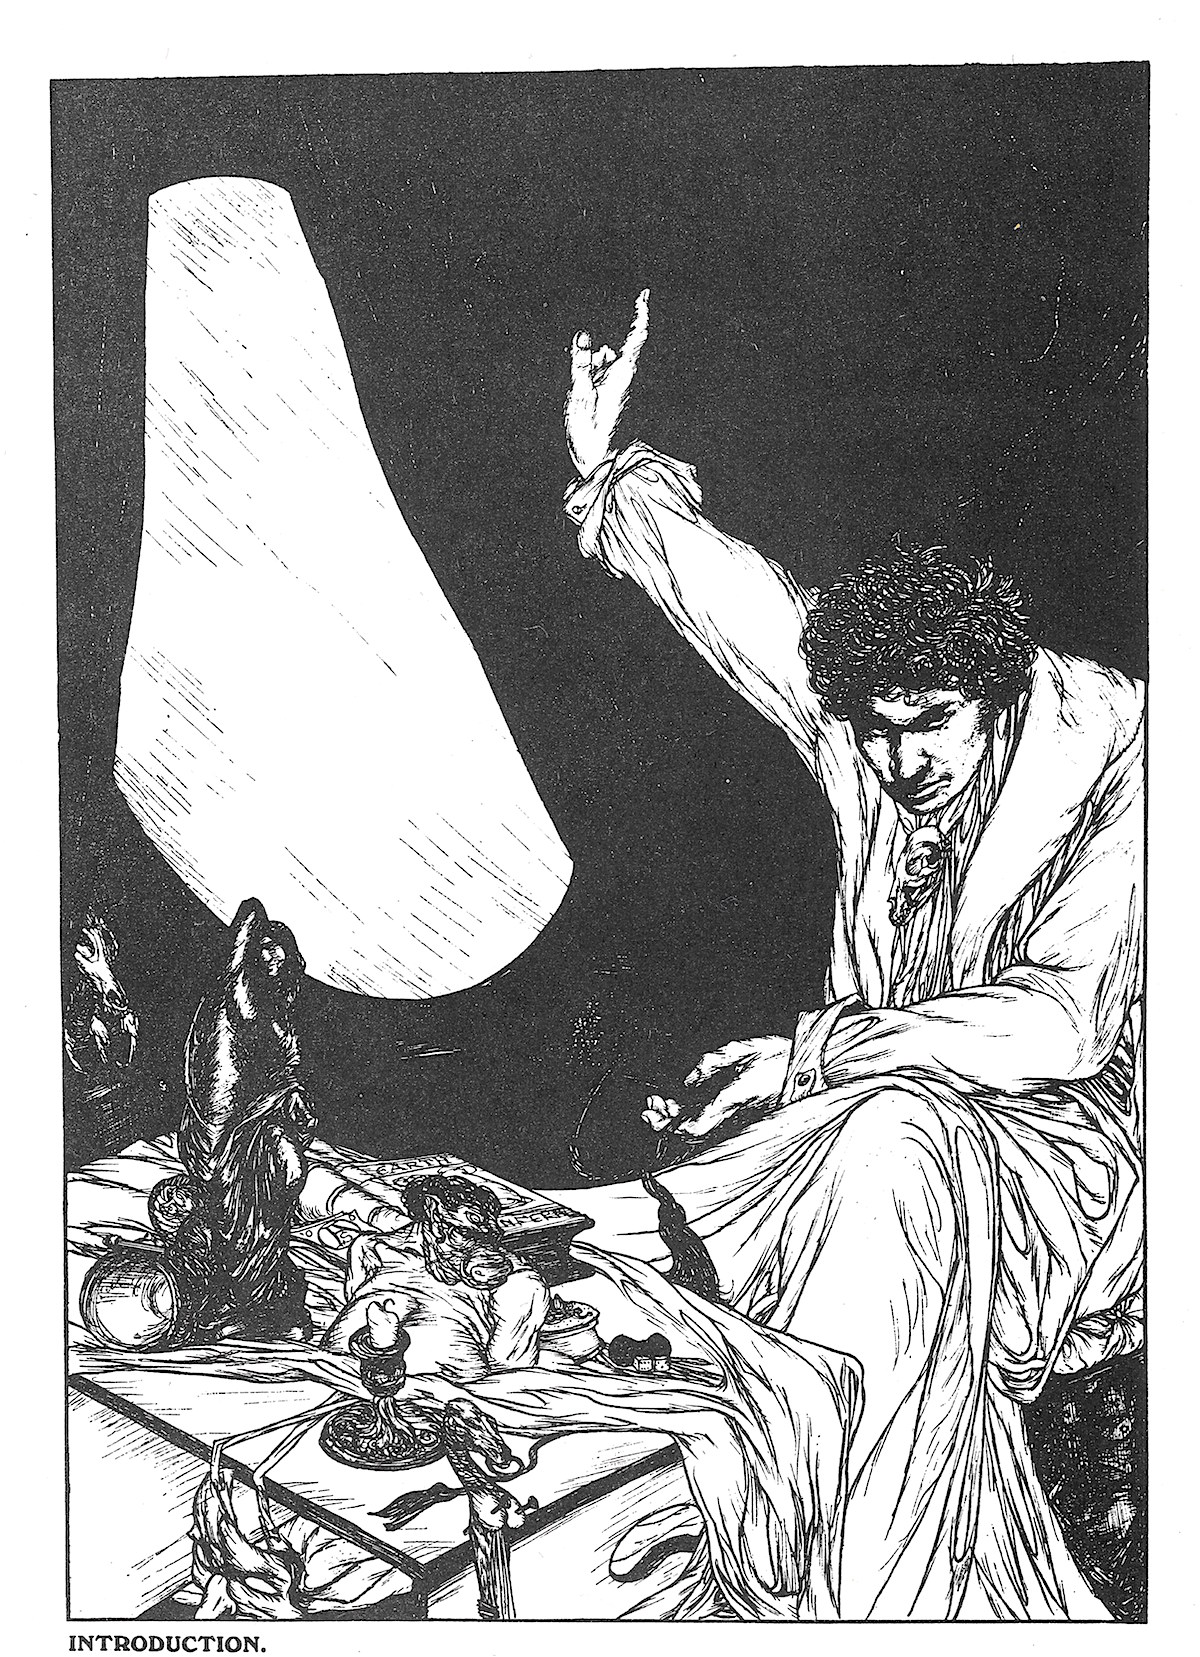 Austin Osman Spare, occult, drawings